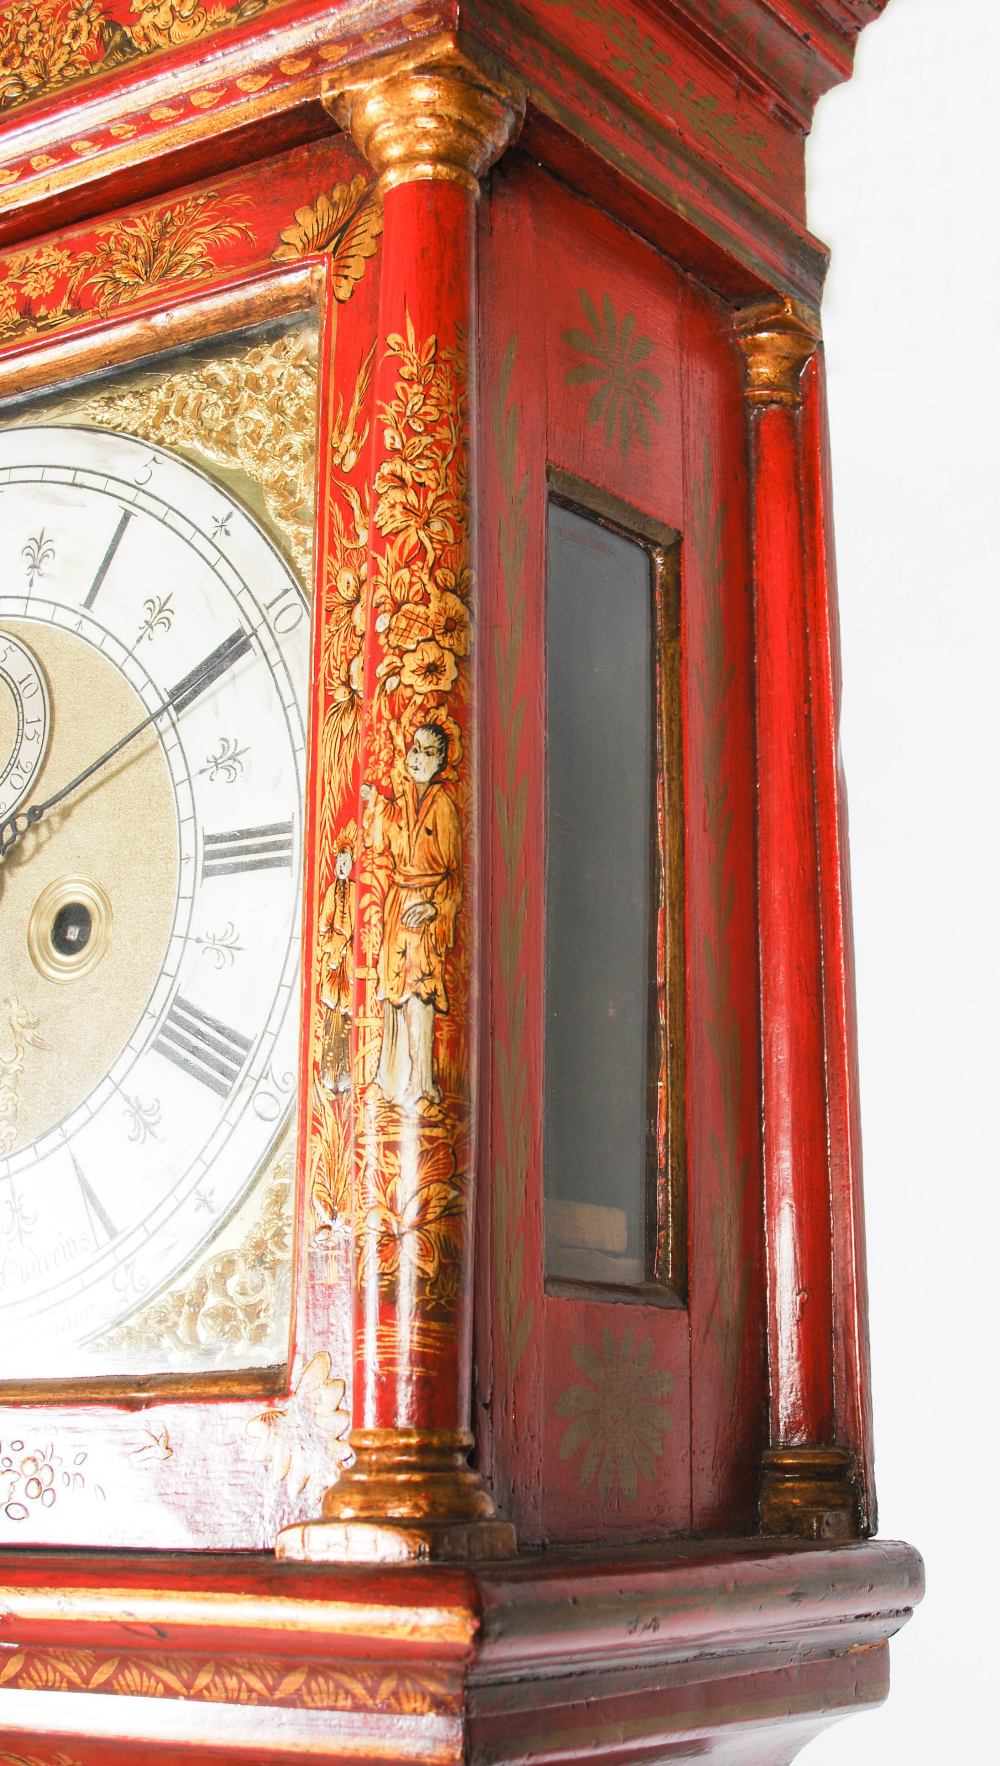 Lot 3 - A late 17th/ early 18th century red lacquered longcase clock, John Andrews, Leadenhall Street,